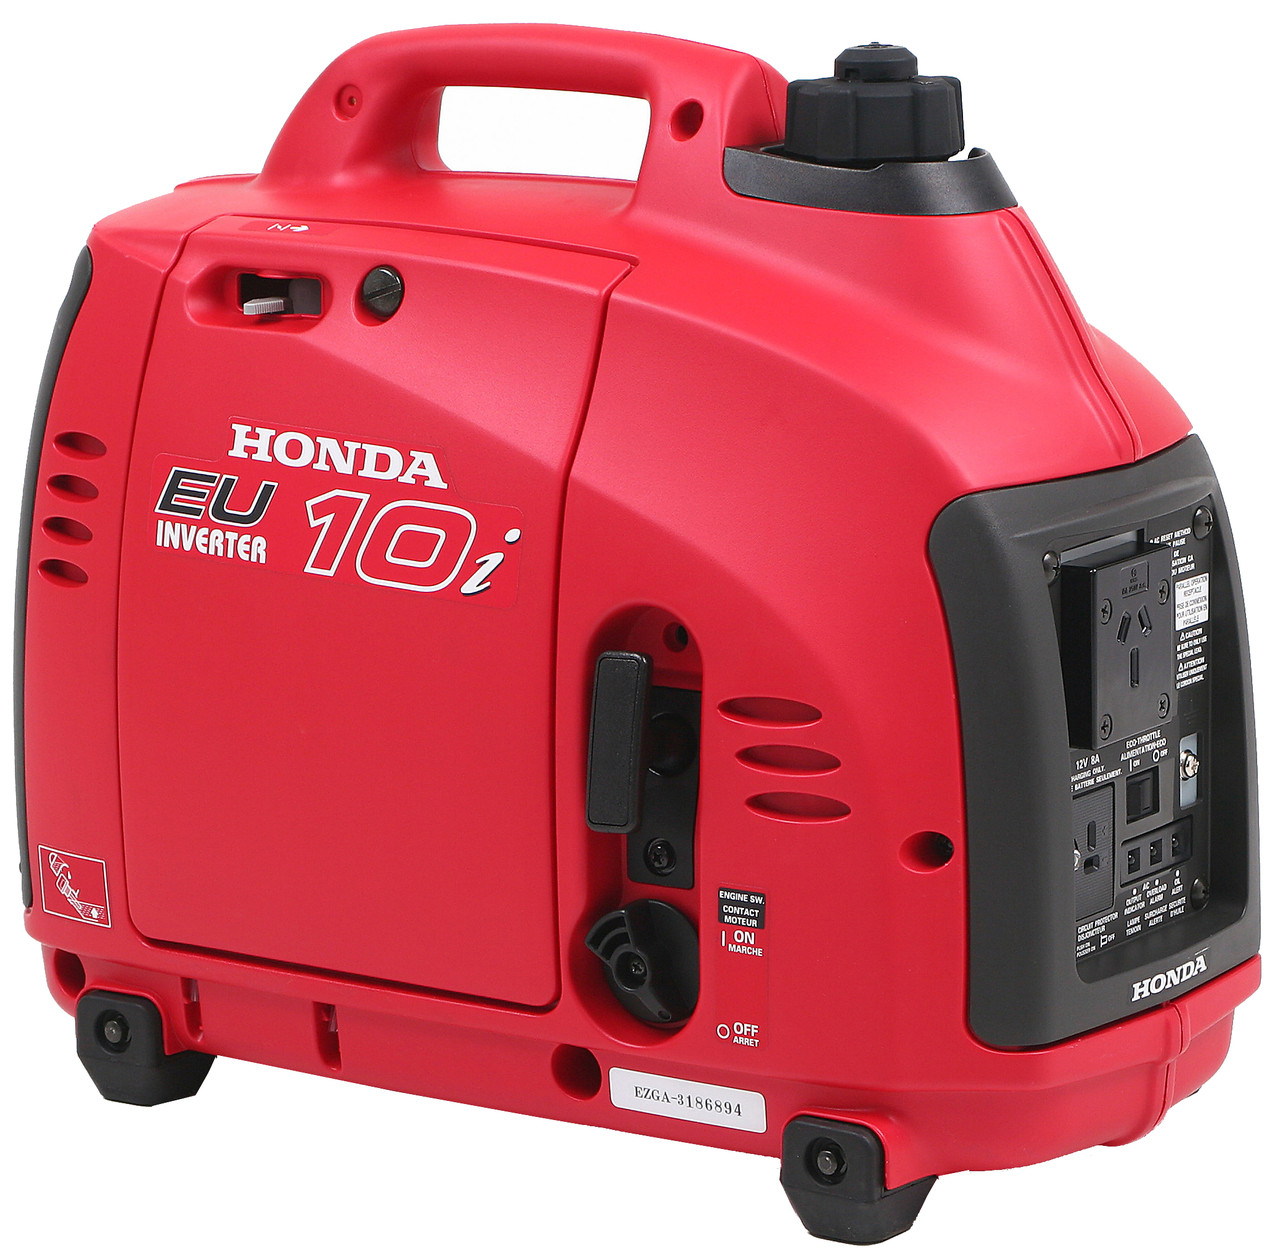 2 kva generator price in bangalore dating 2